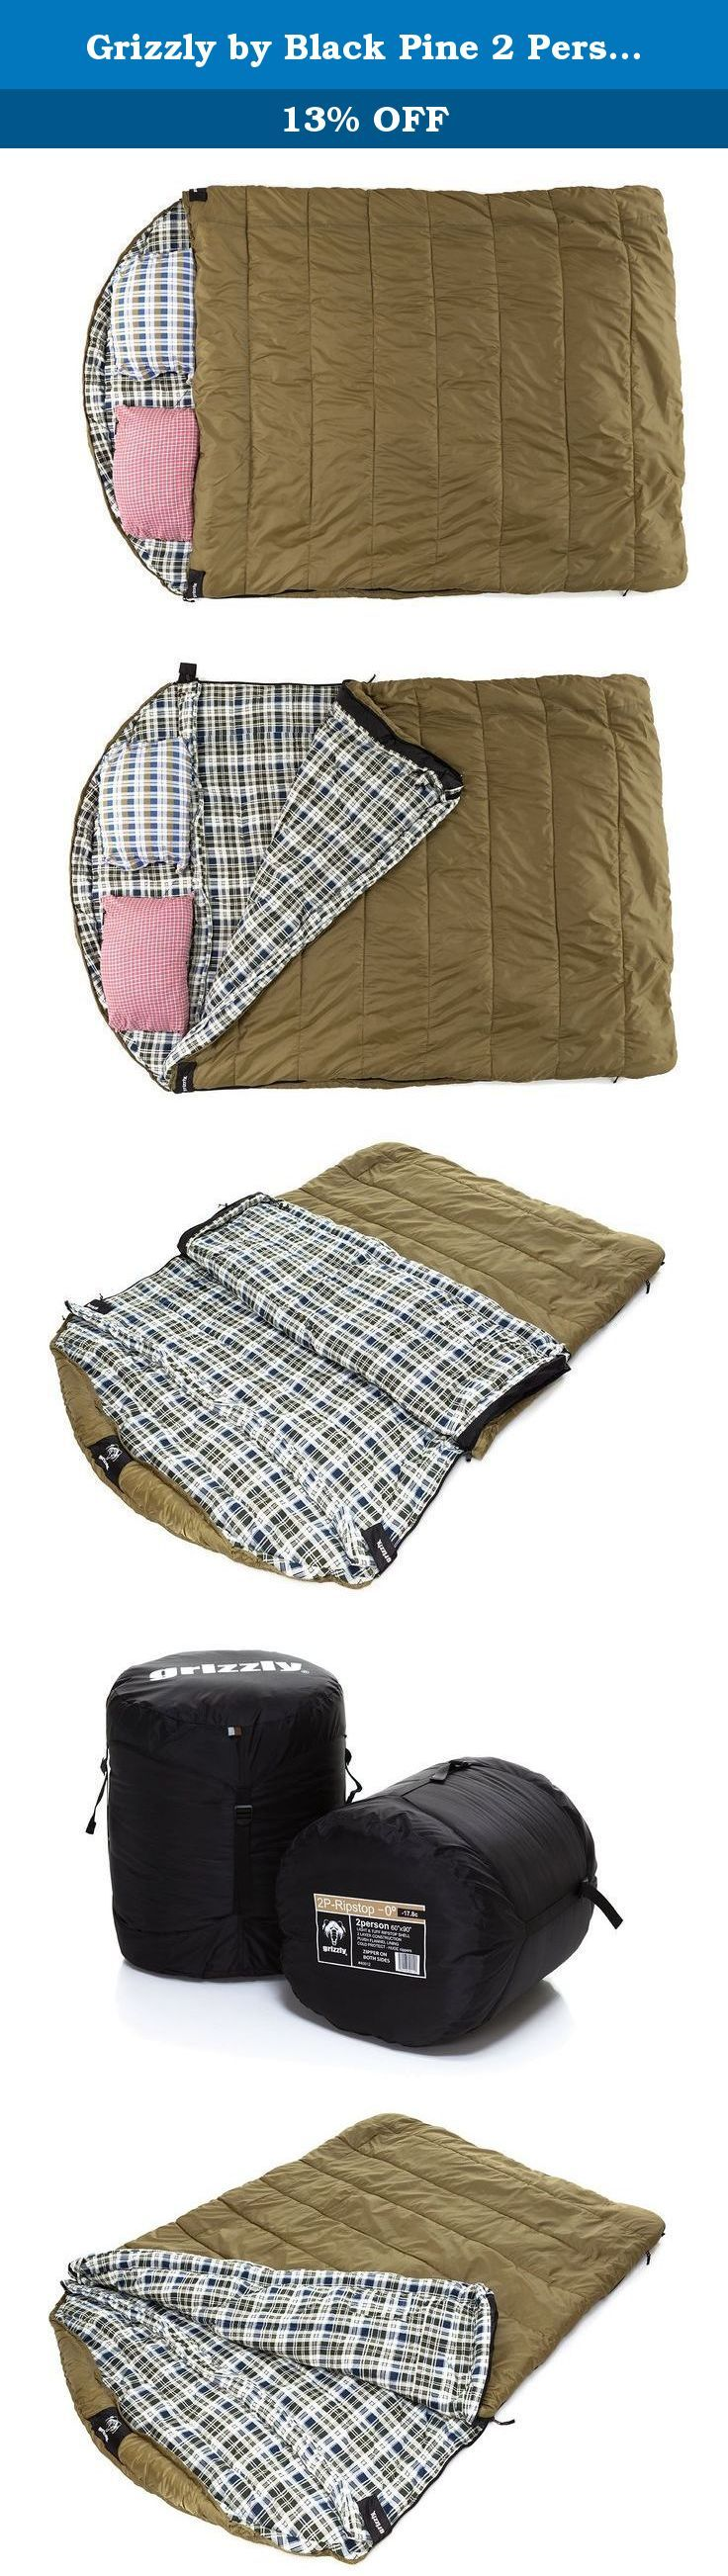 Grizzly by Black Pine 2 Person 0 Degree F Ripstop Sleeping Bag, Olive. For couples camping, the Grizzly 2 Person 0 ripstop sleeping bag shares the same superior insulation and comfort features you'll find in the Grizzly one-person version, but with a larger sleeping area to accommodate two adult sleepers. Don't be surprised if a child or the family dog wants to climb in with you -- it's that big. It also zips from both sides, so you won't have to wake your sleeping partner to exit in the...